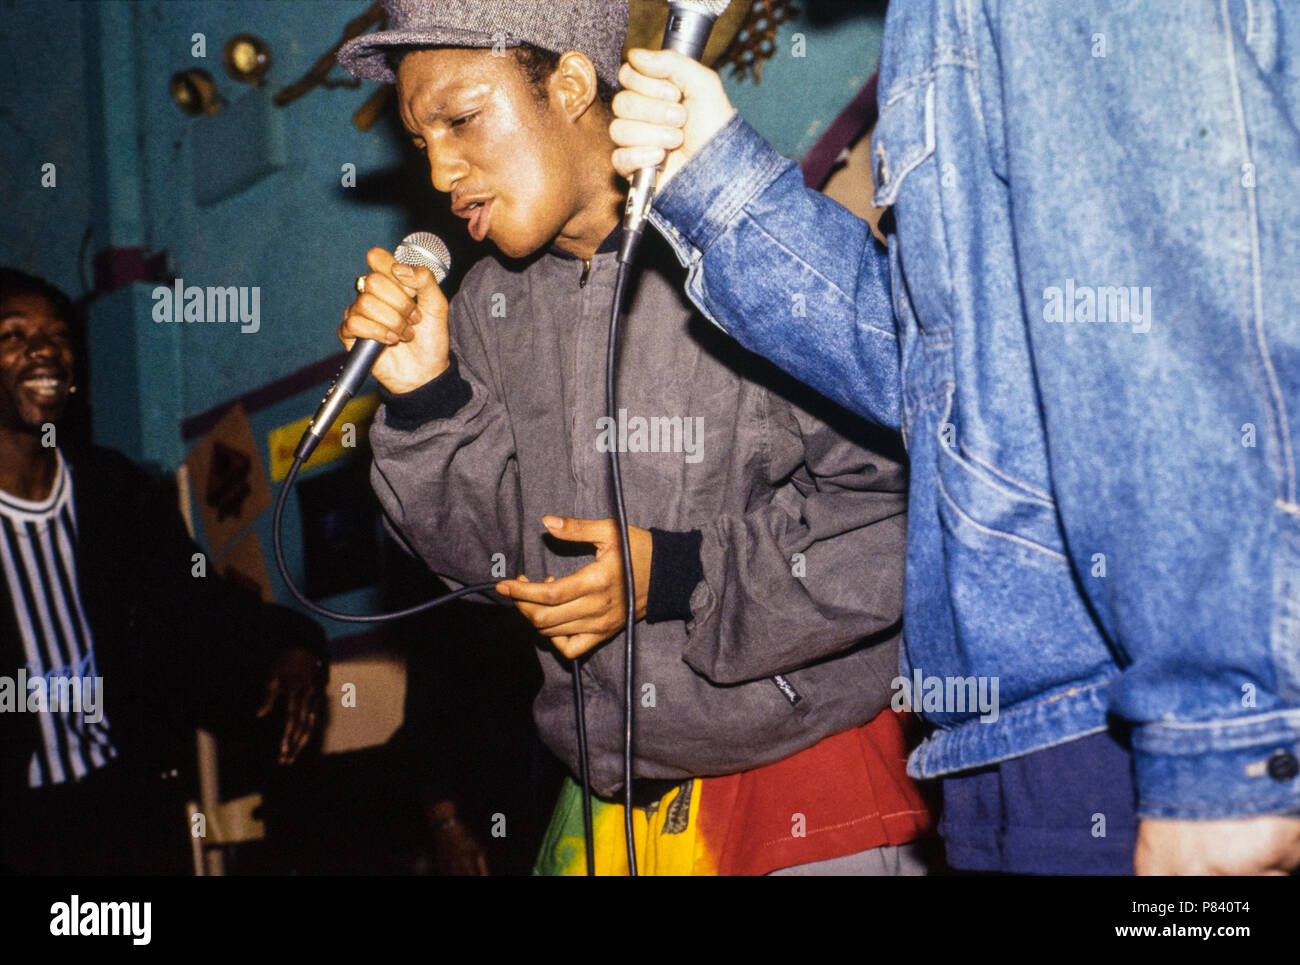 Massive Attack featuring Tricky in concert, SOBs, New York City, 30 October 1991 Stock Photo